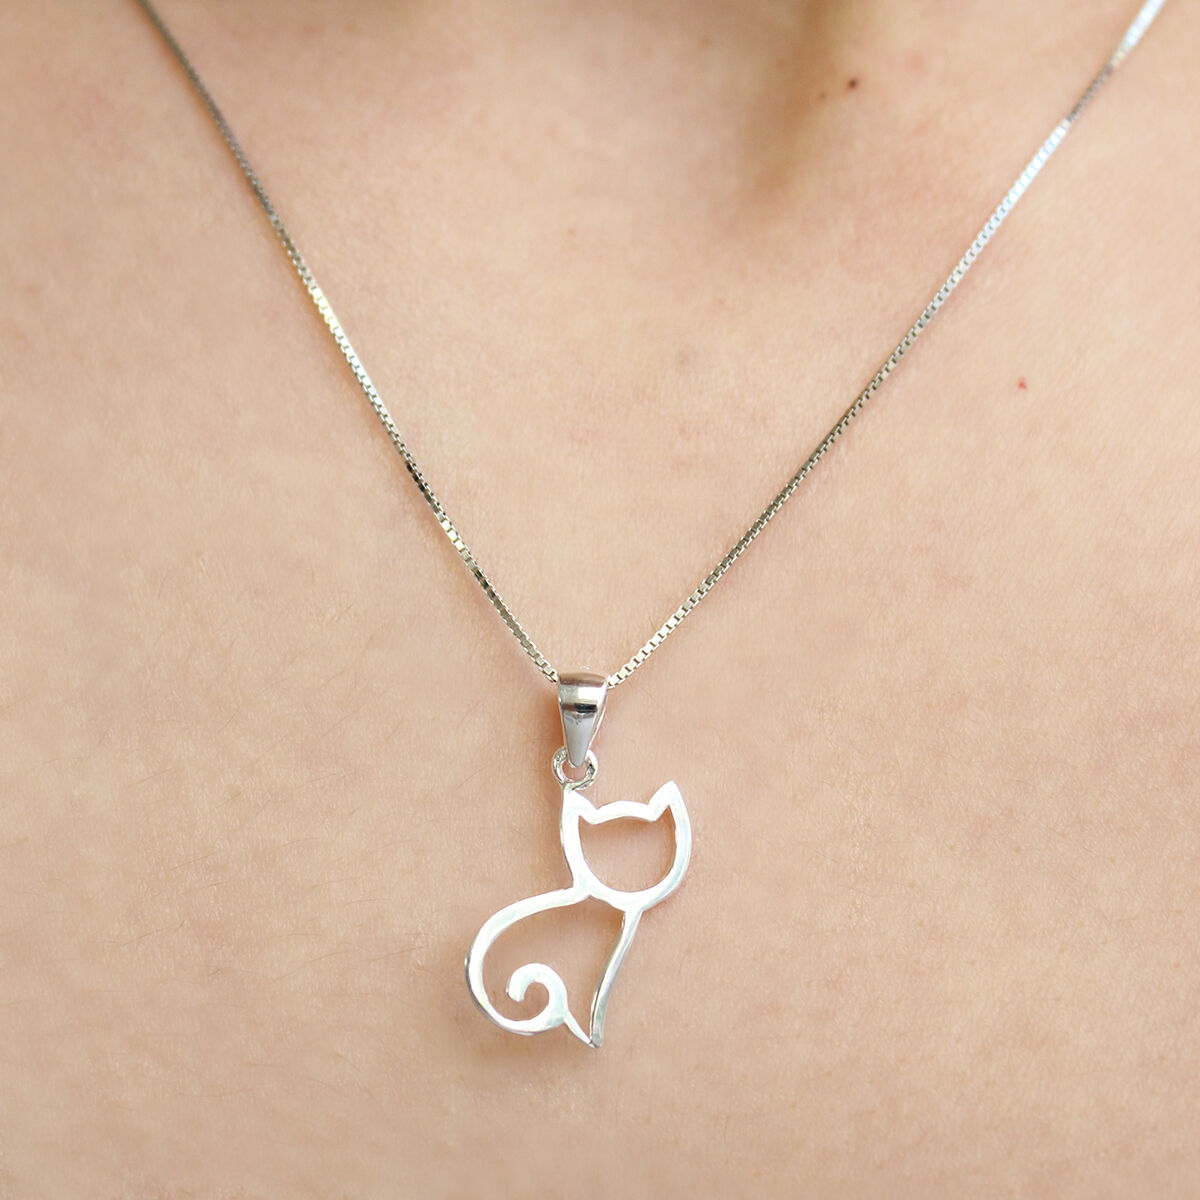 925 Sterling Silver Cat Necklace Hanging On Kitten Cat Necklace Minimalist Style